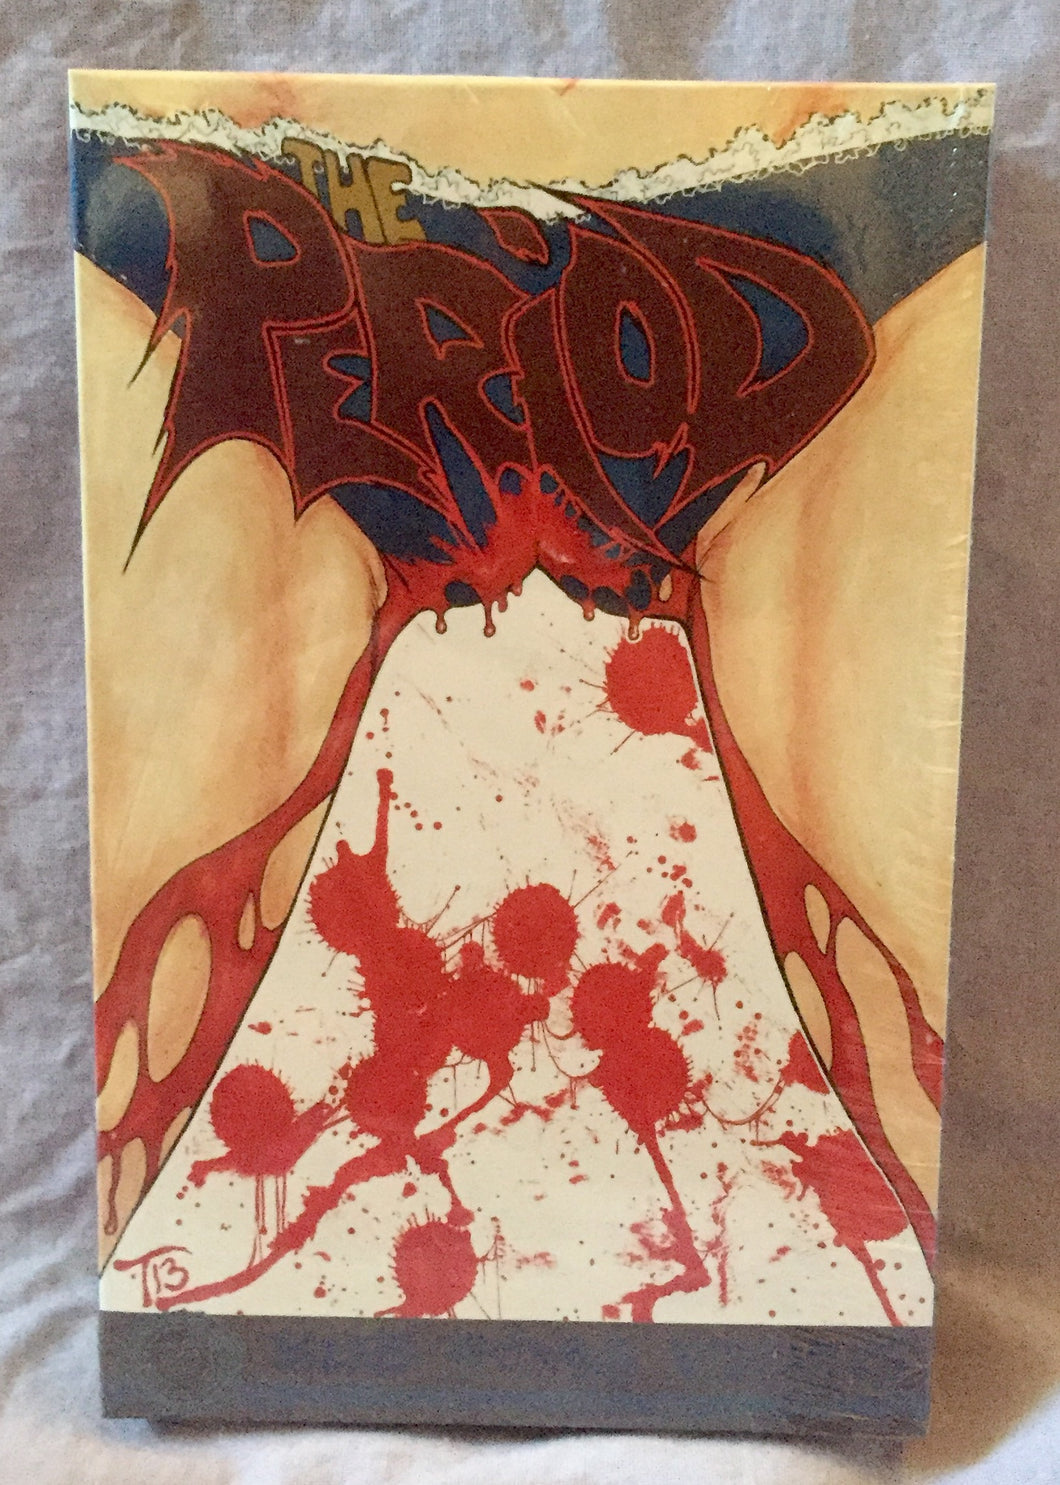 Period, The Big Box VHS